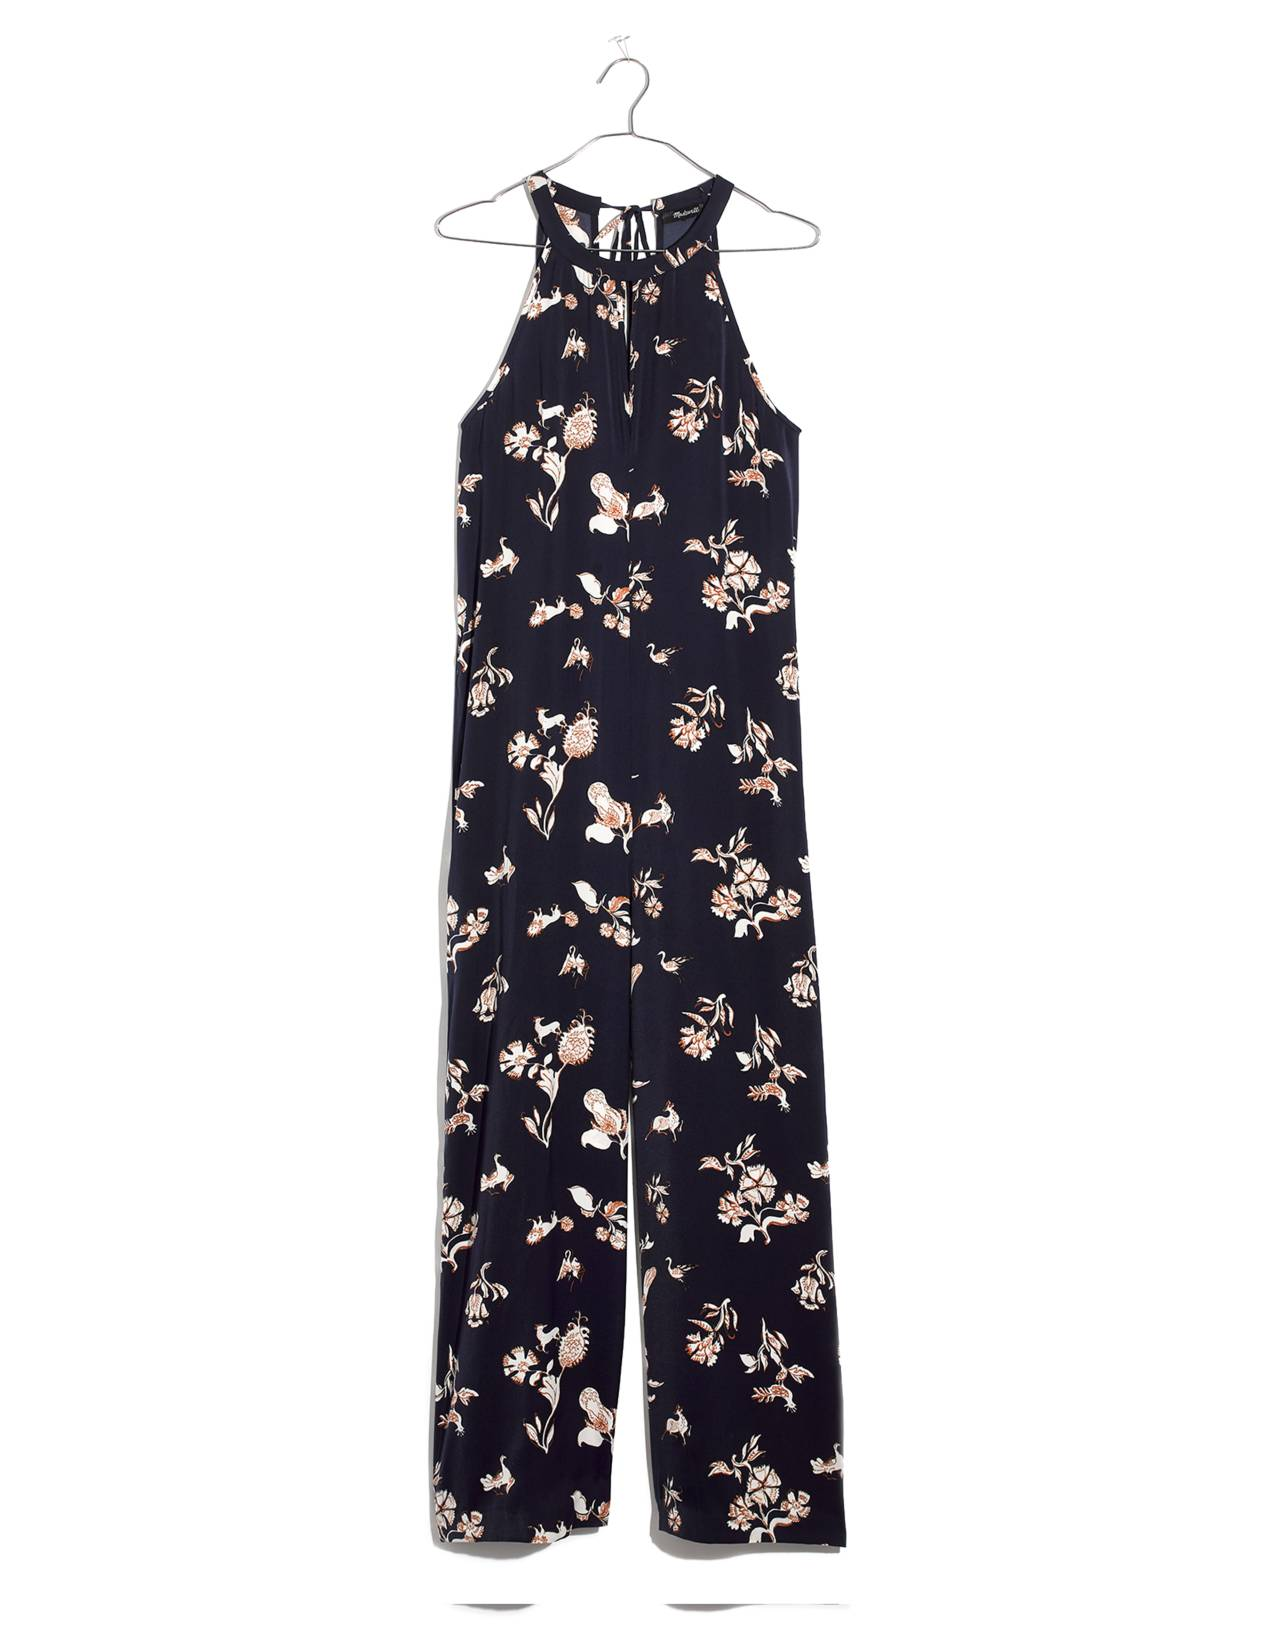 Keyhole Wide-Leg Jumpsuit in Menagerie in folklore print nightfall image 4